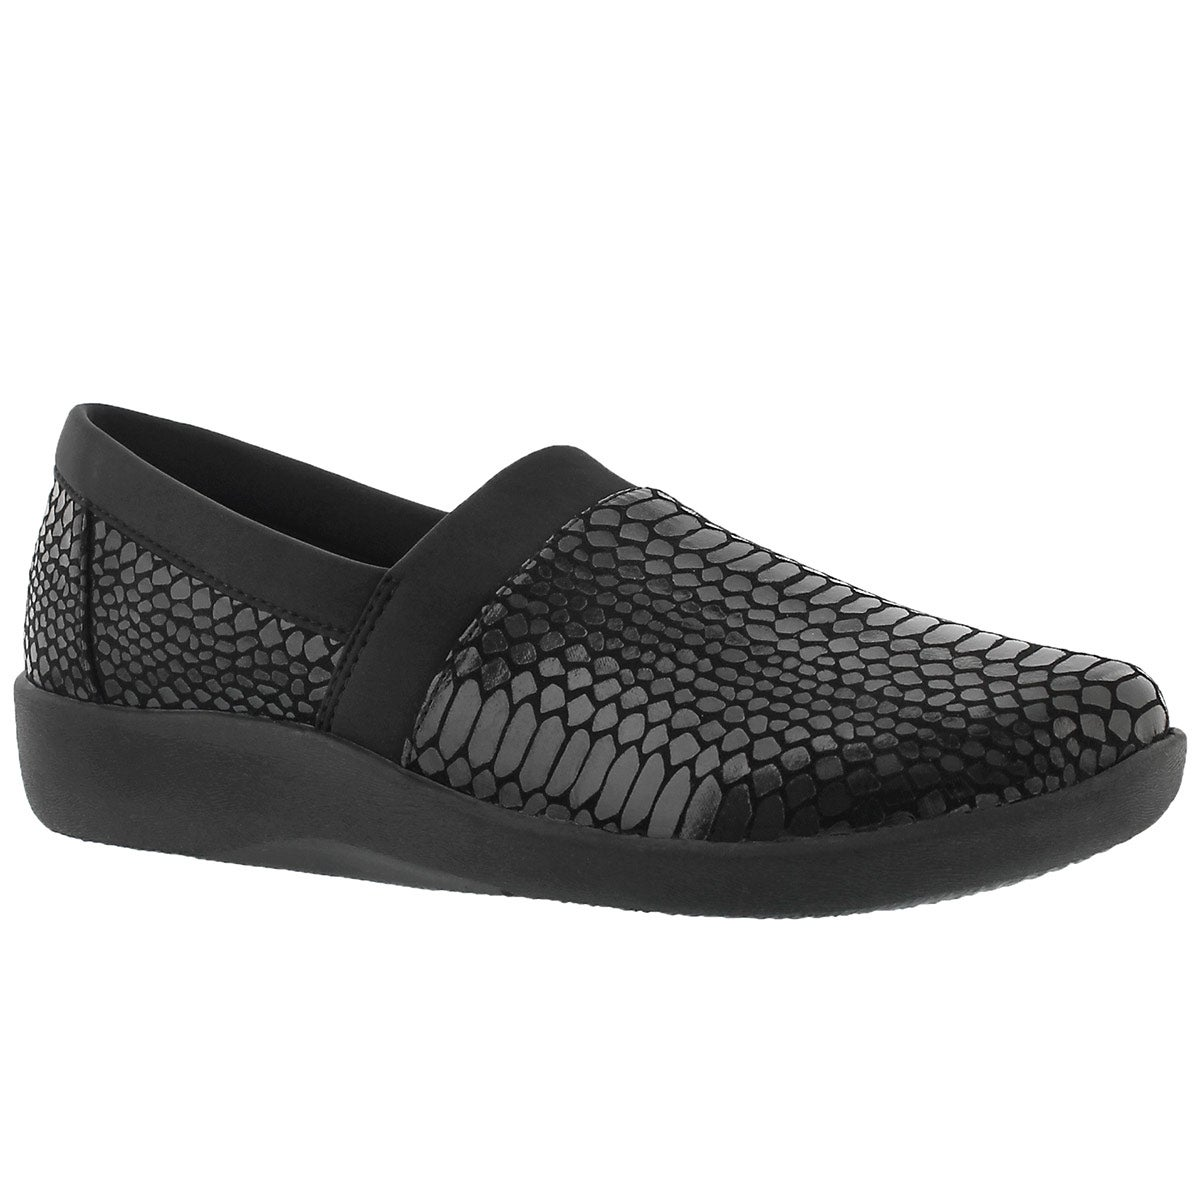 Lds Sillian Blair blk snk slip on loafer